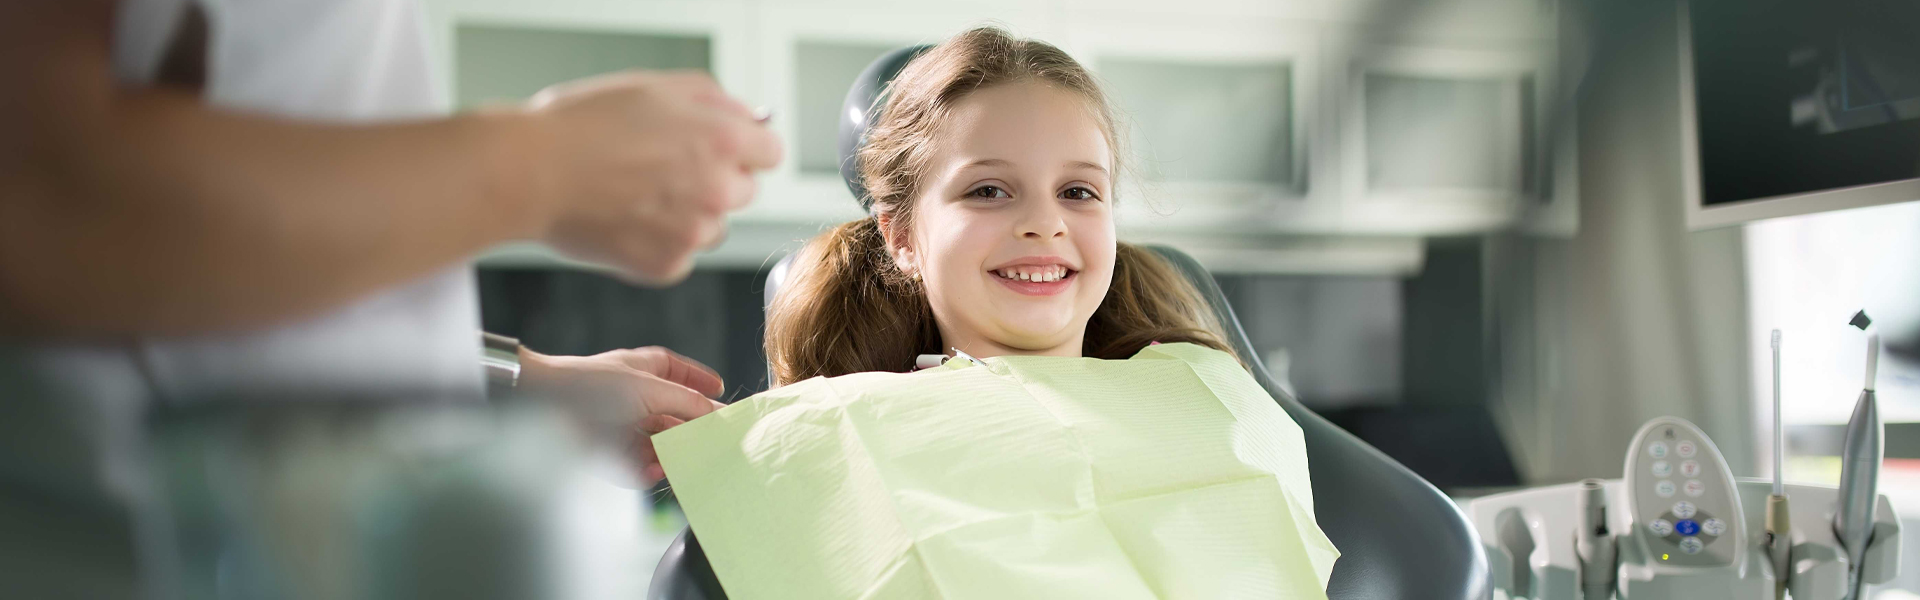 How to Care for Your Child's Teeth in Pediatric Dentistry